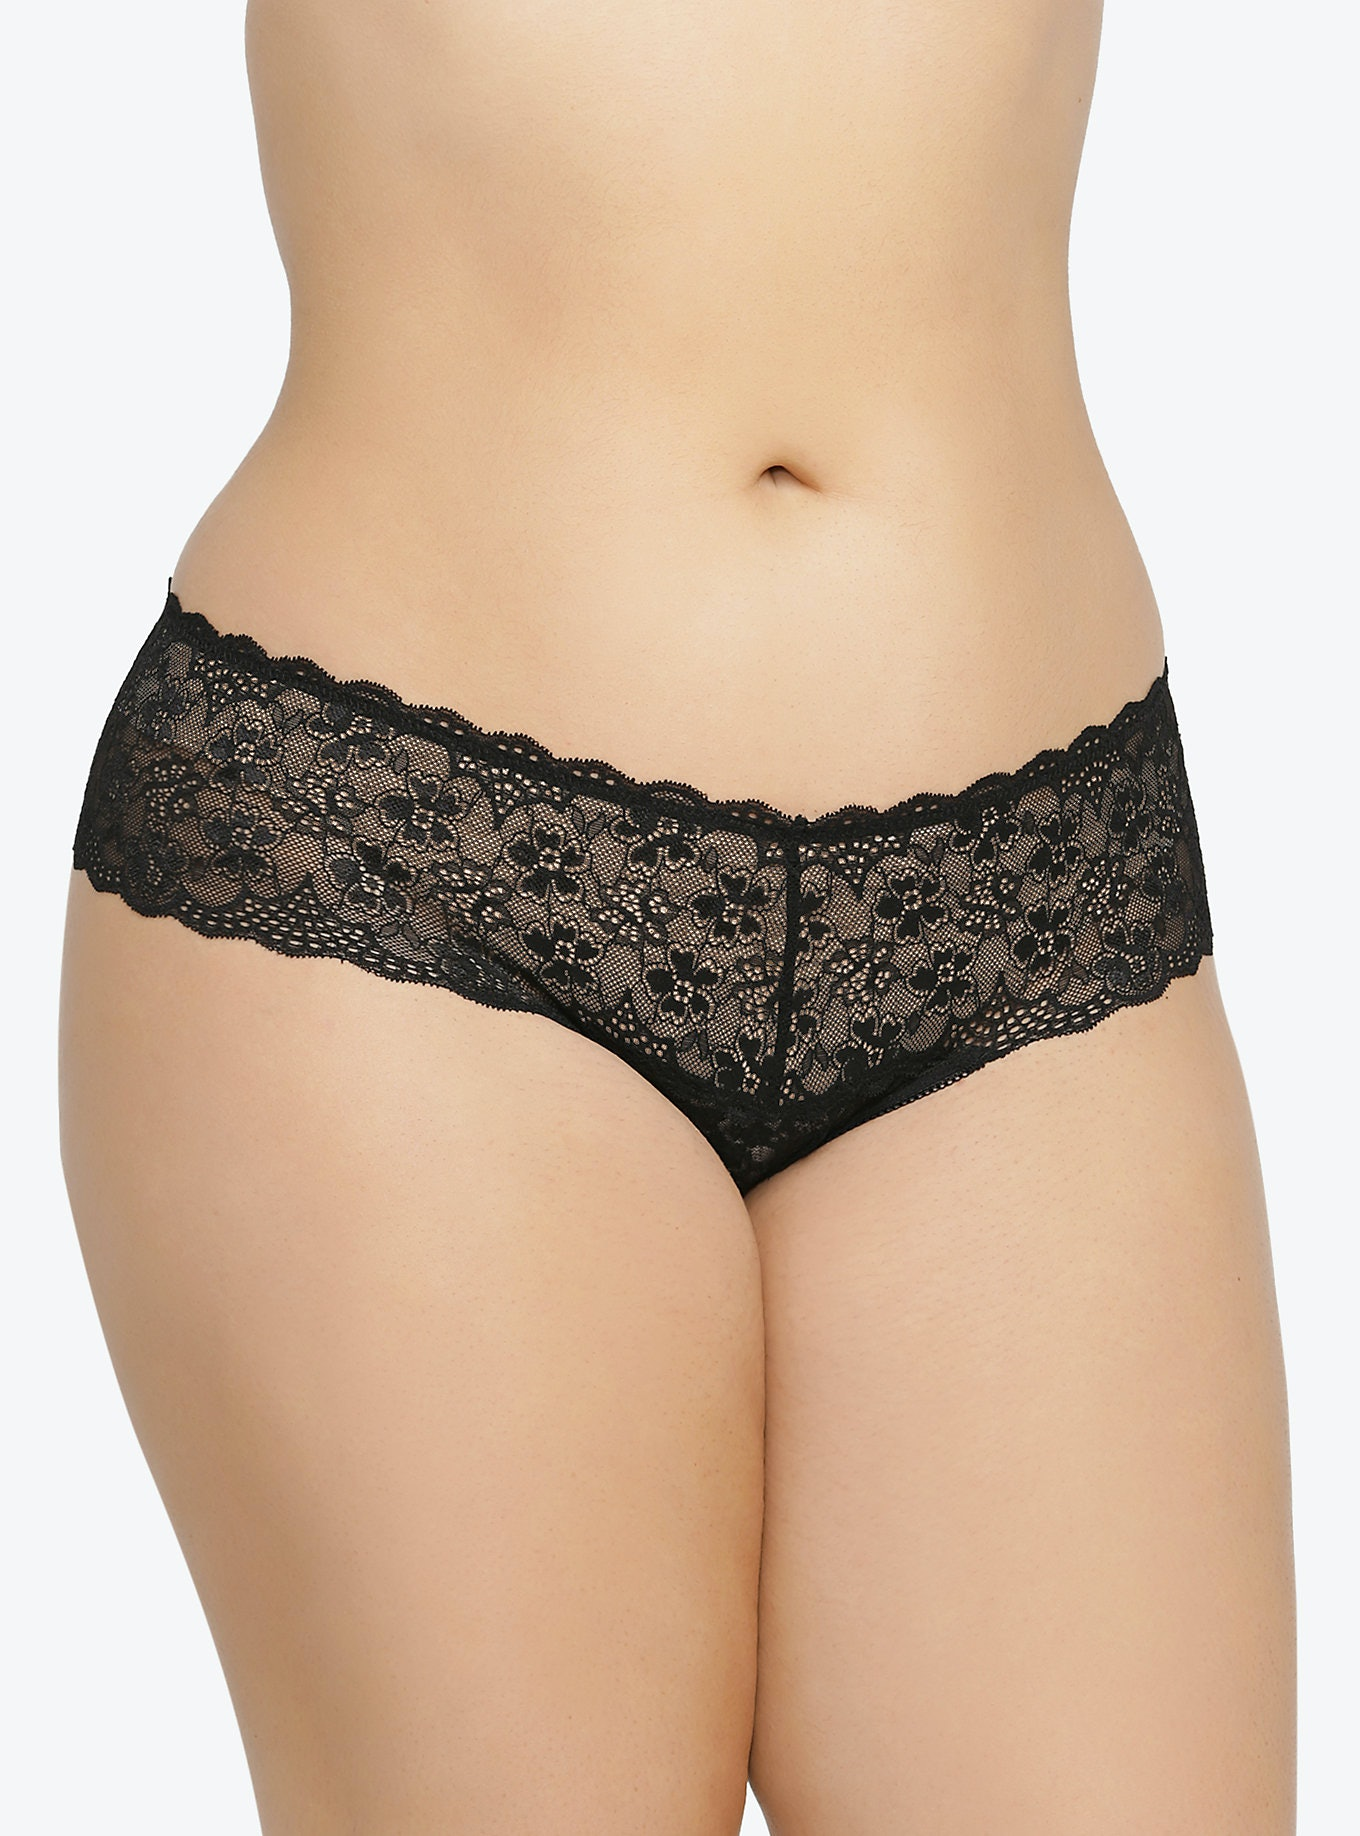 7 Things Women Who Wear Thongs Will Understand, From Death By Wedgie To  Serious Health Concerns